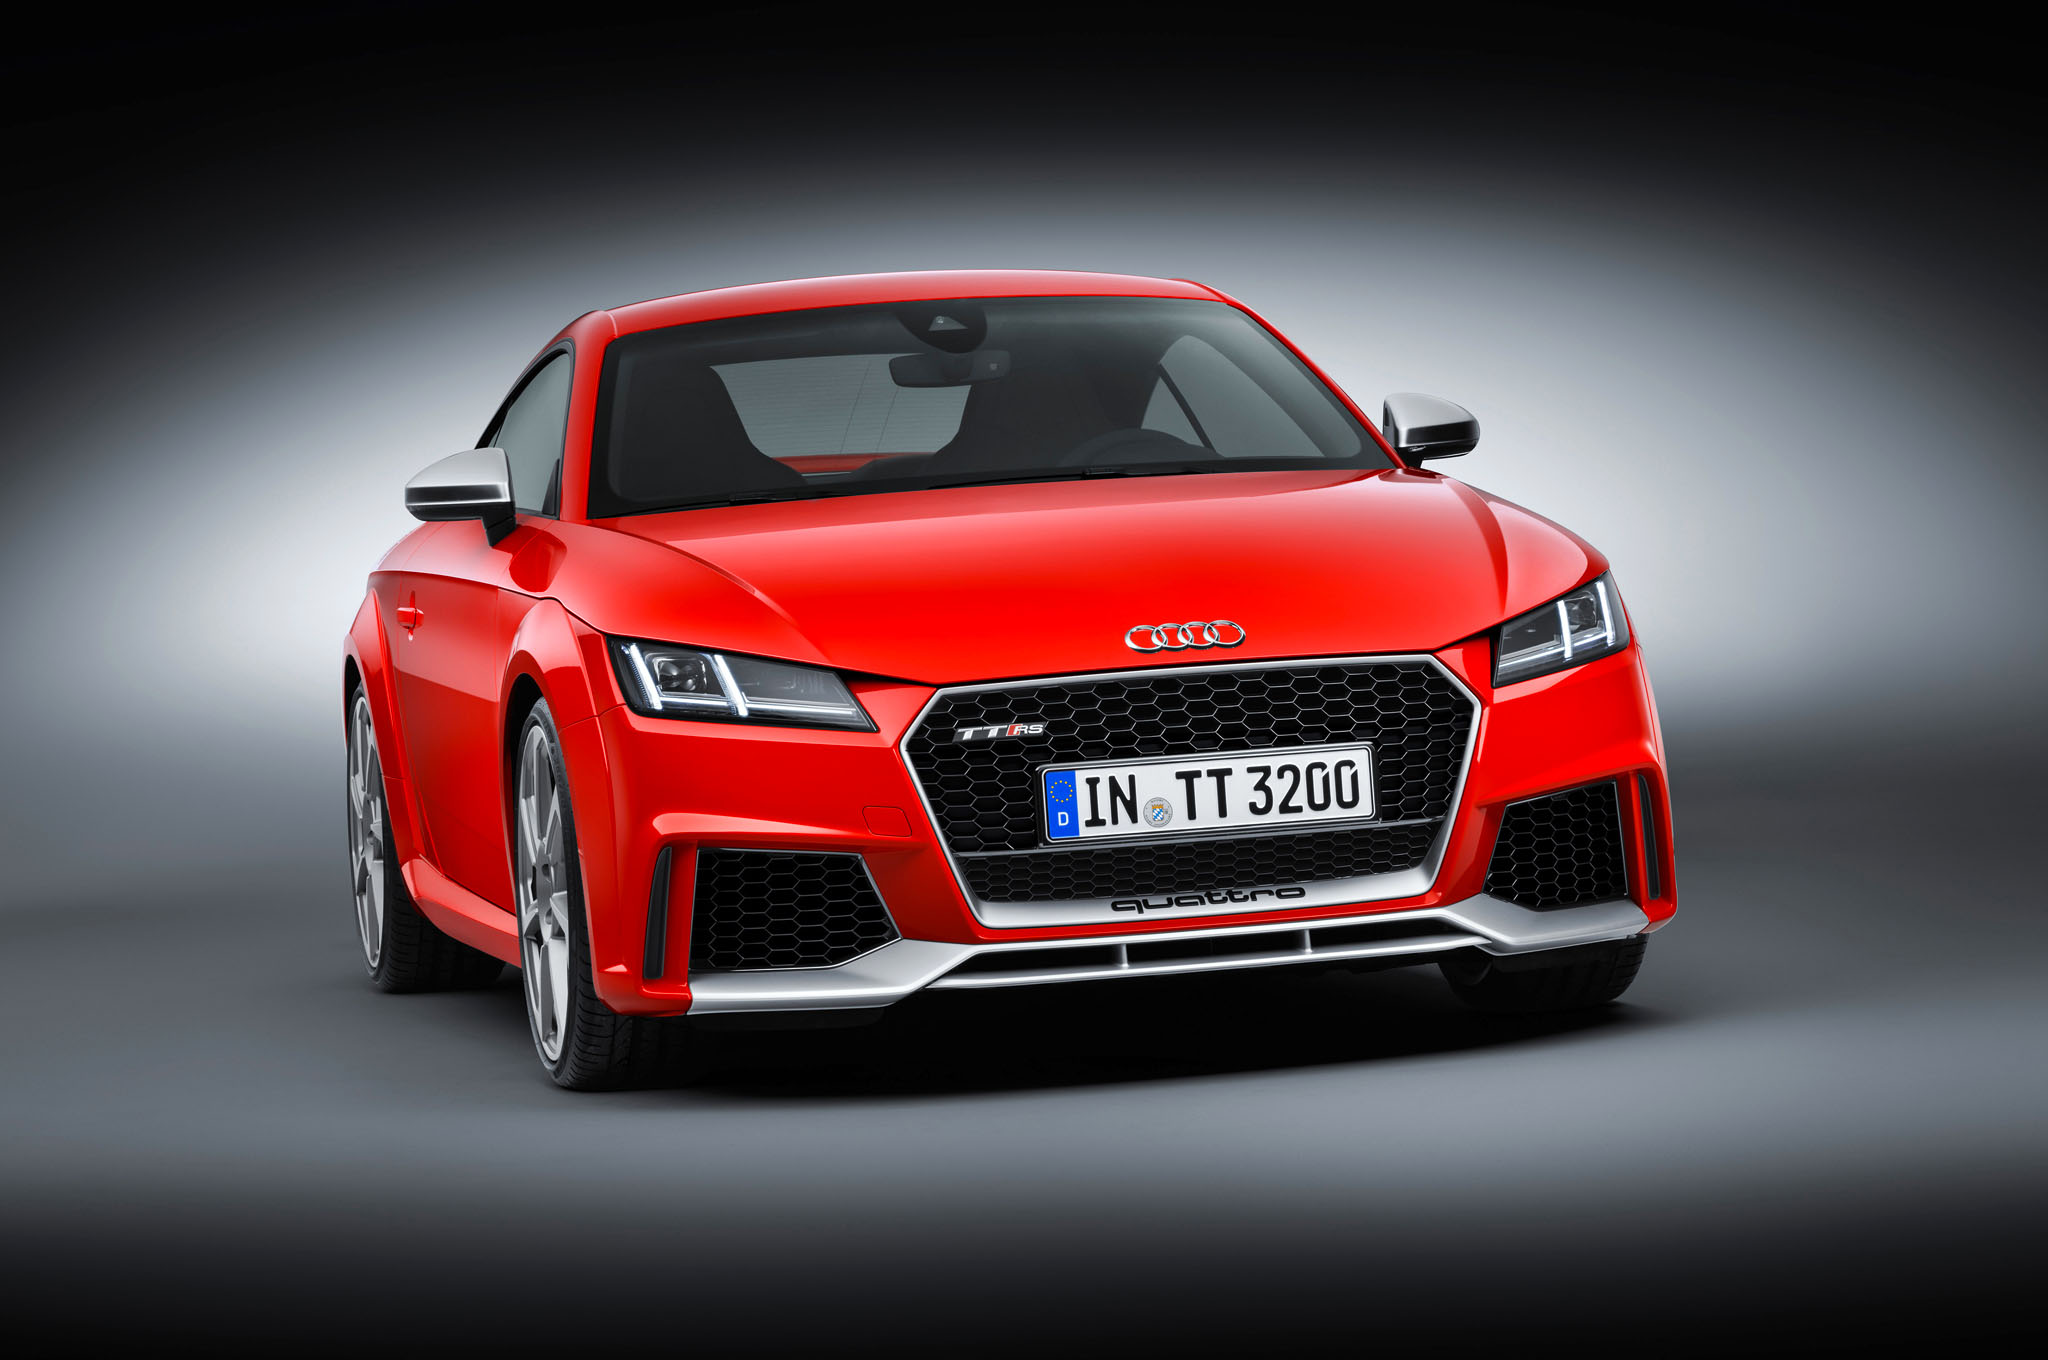 2017 Audi TT RS Coupe Andoird Wallpaper | HD Car Wallpapers